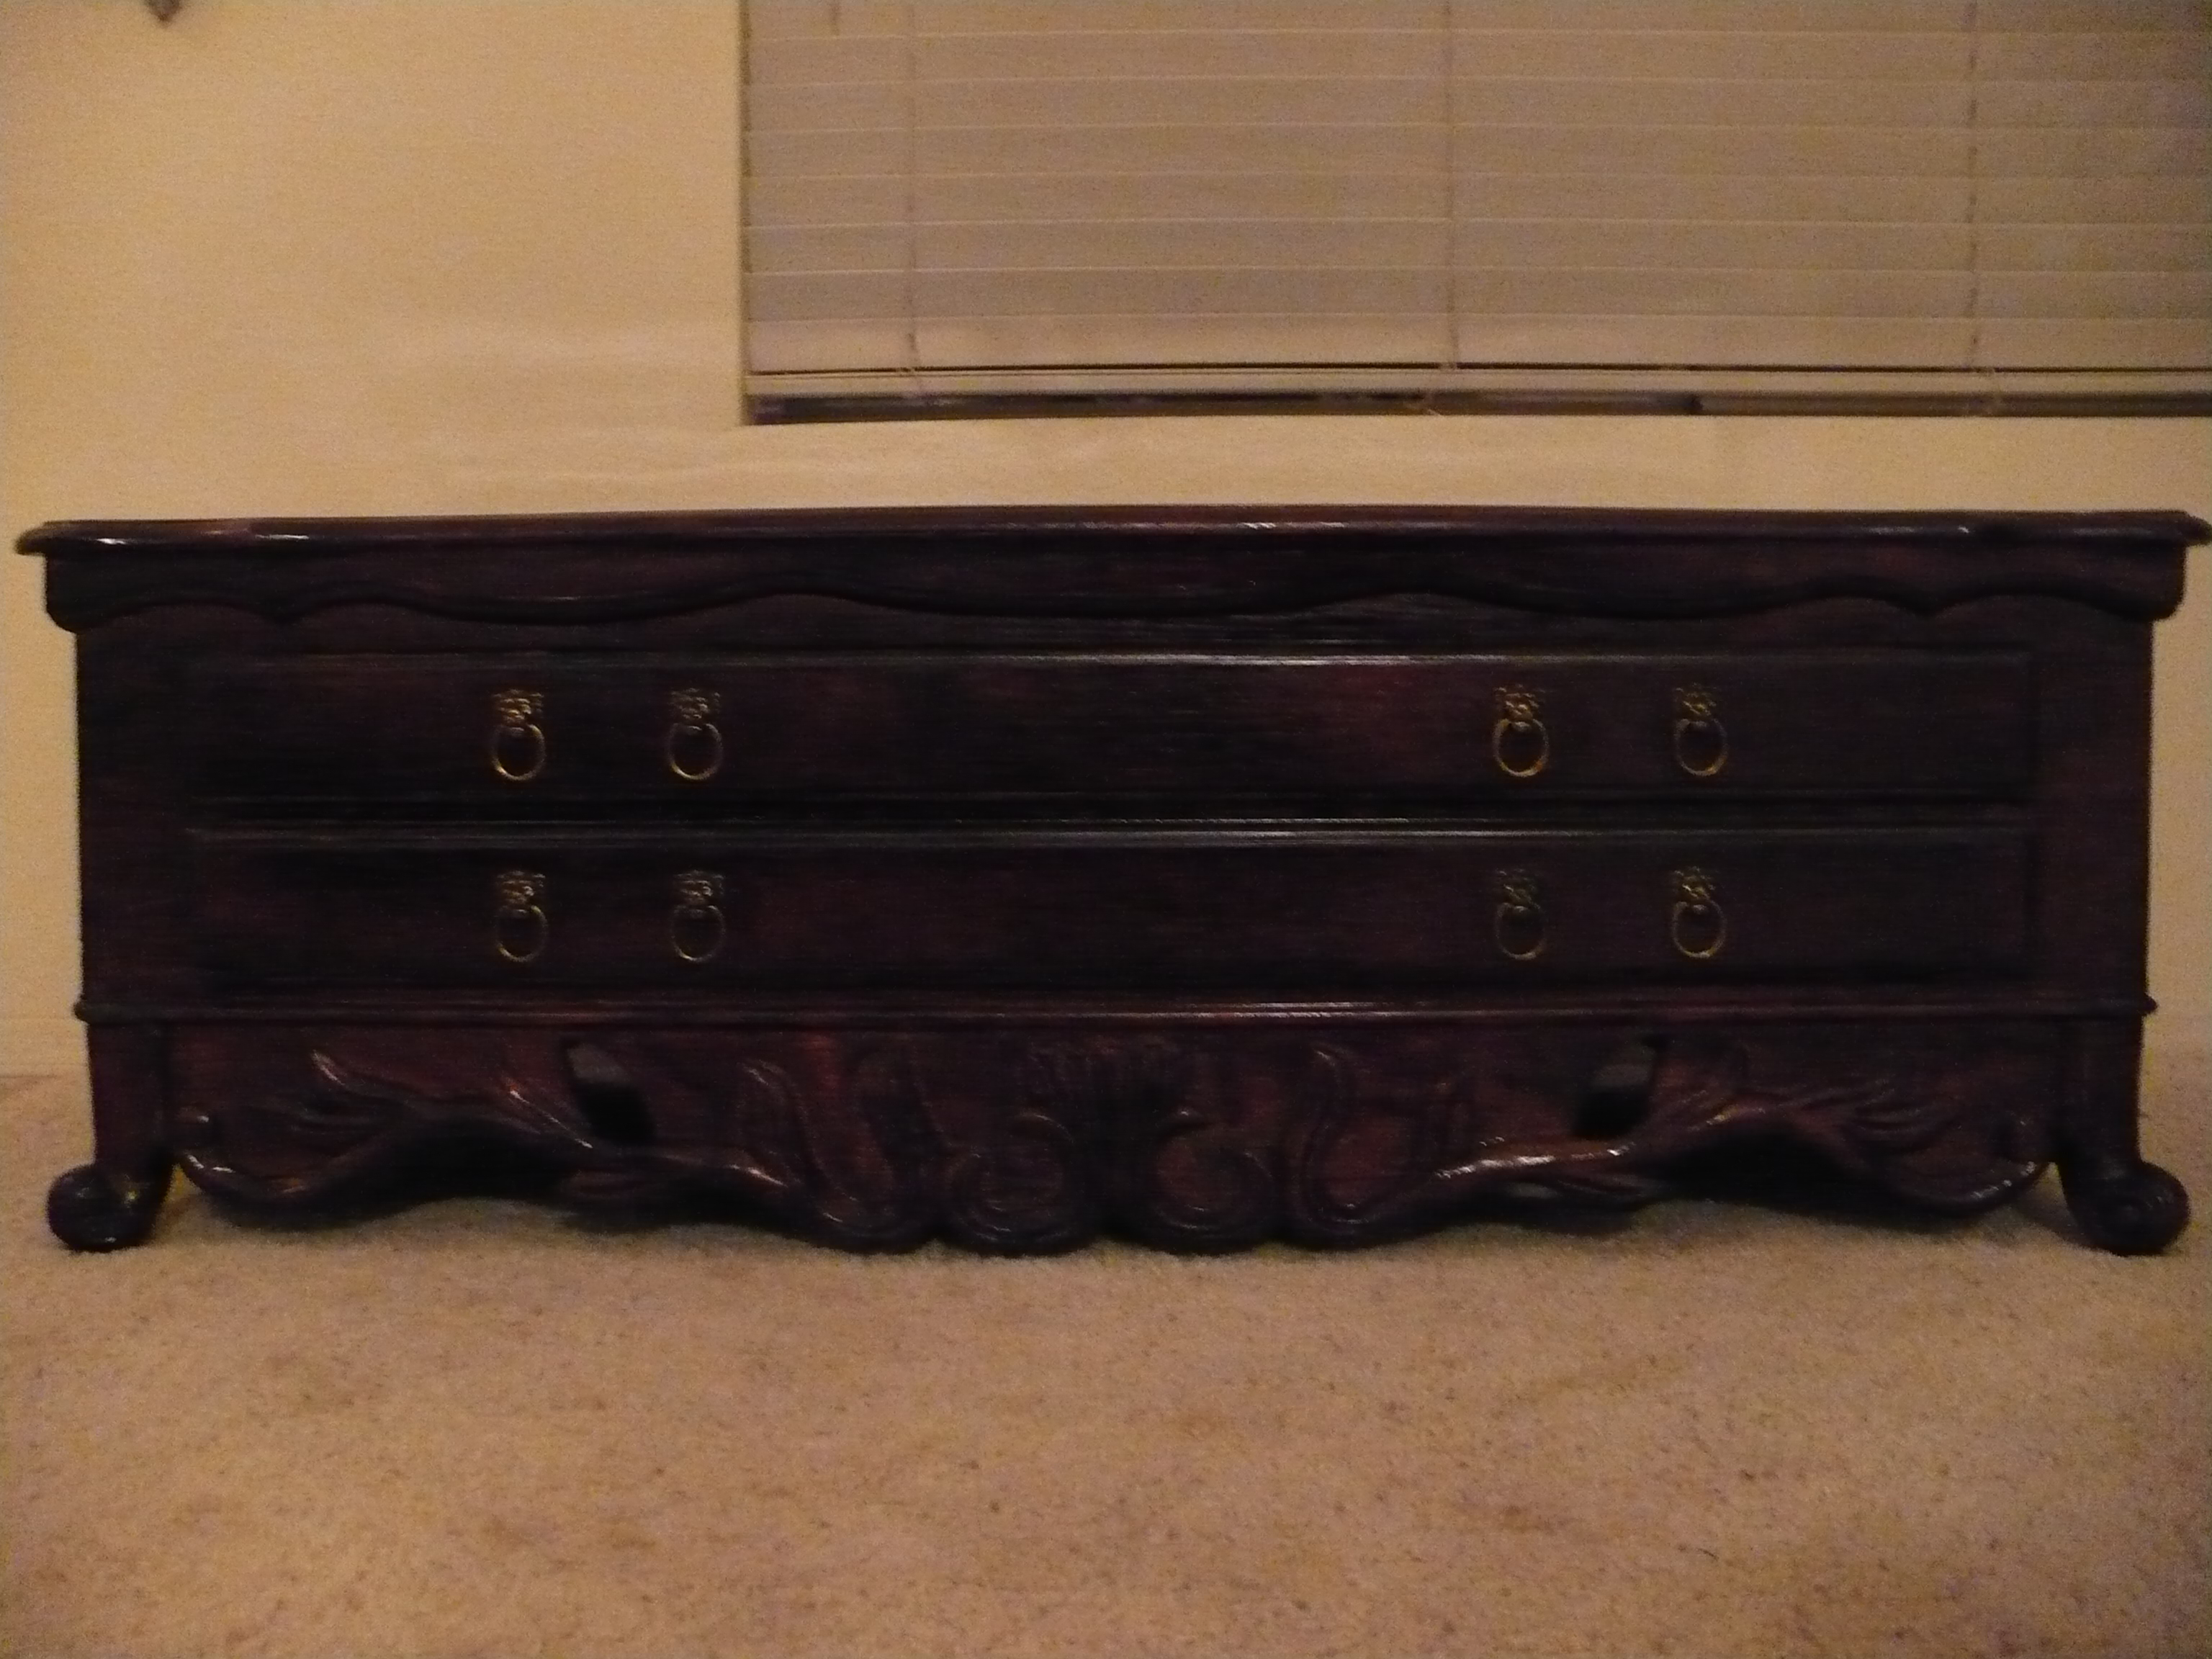 Phoenix Craigslist AZ Furniture Finds